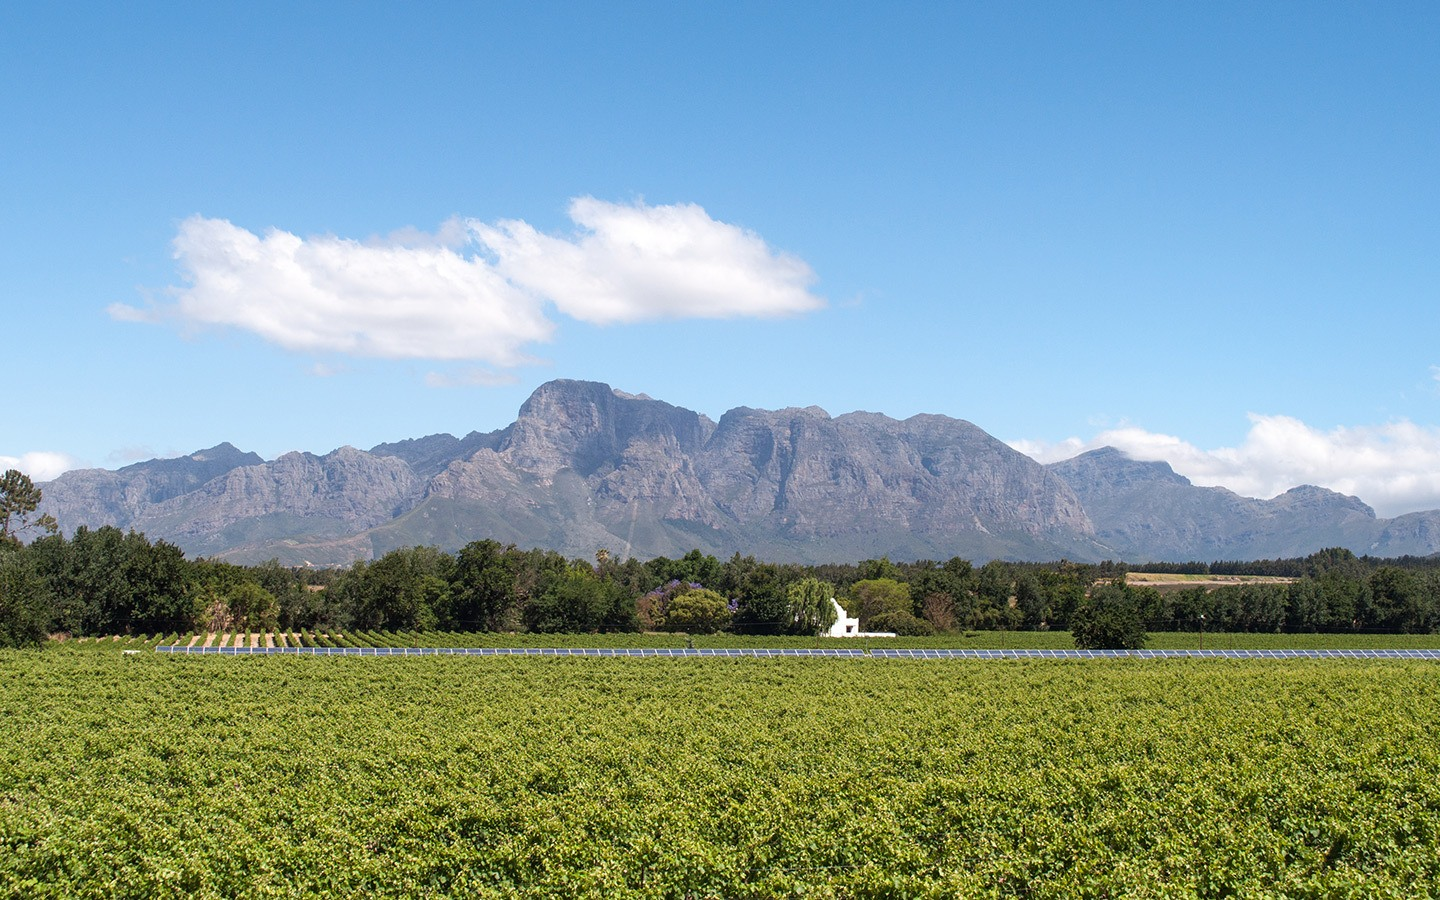 Vineyards in South Africa's Cape Winelands